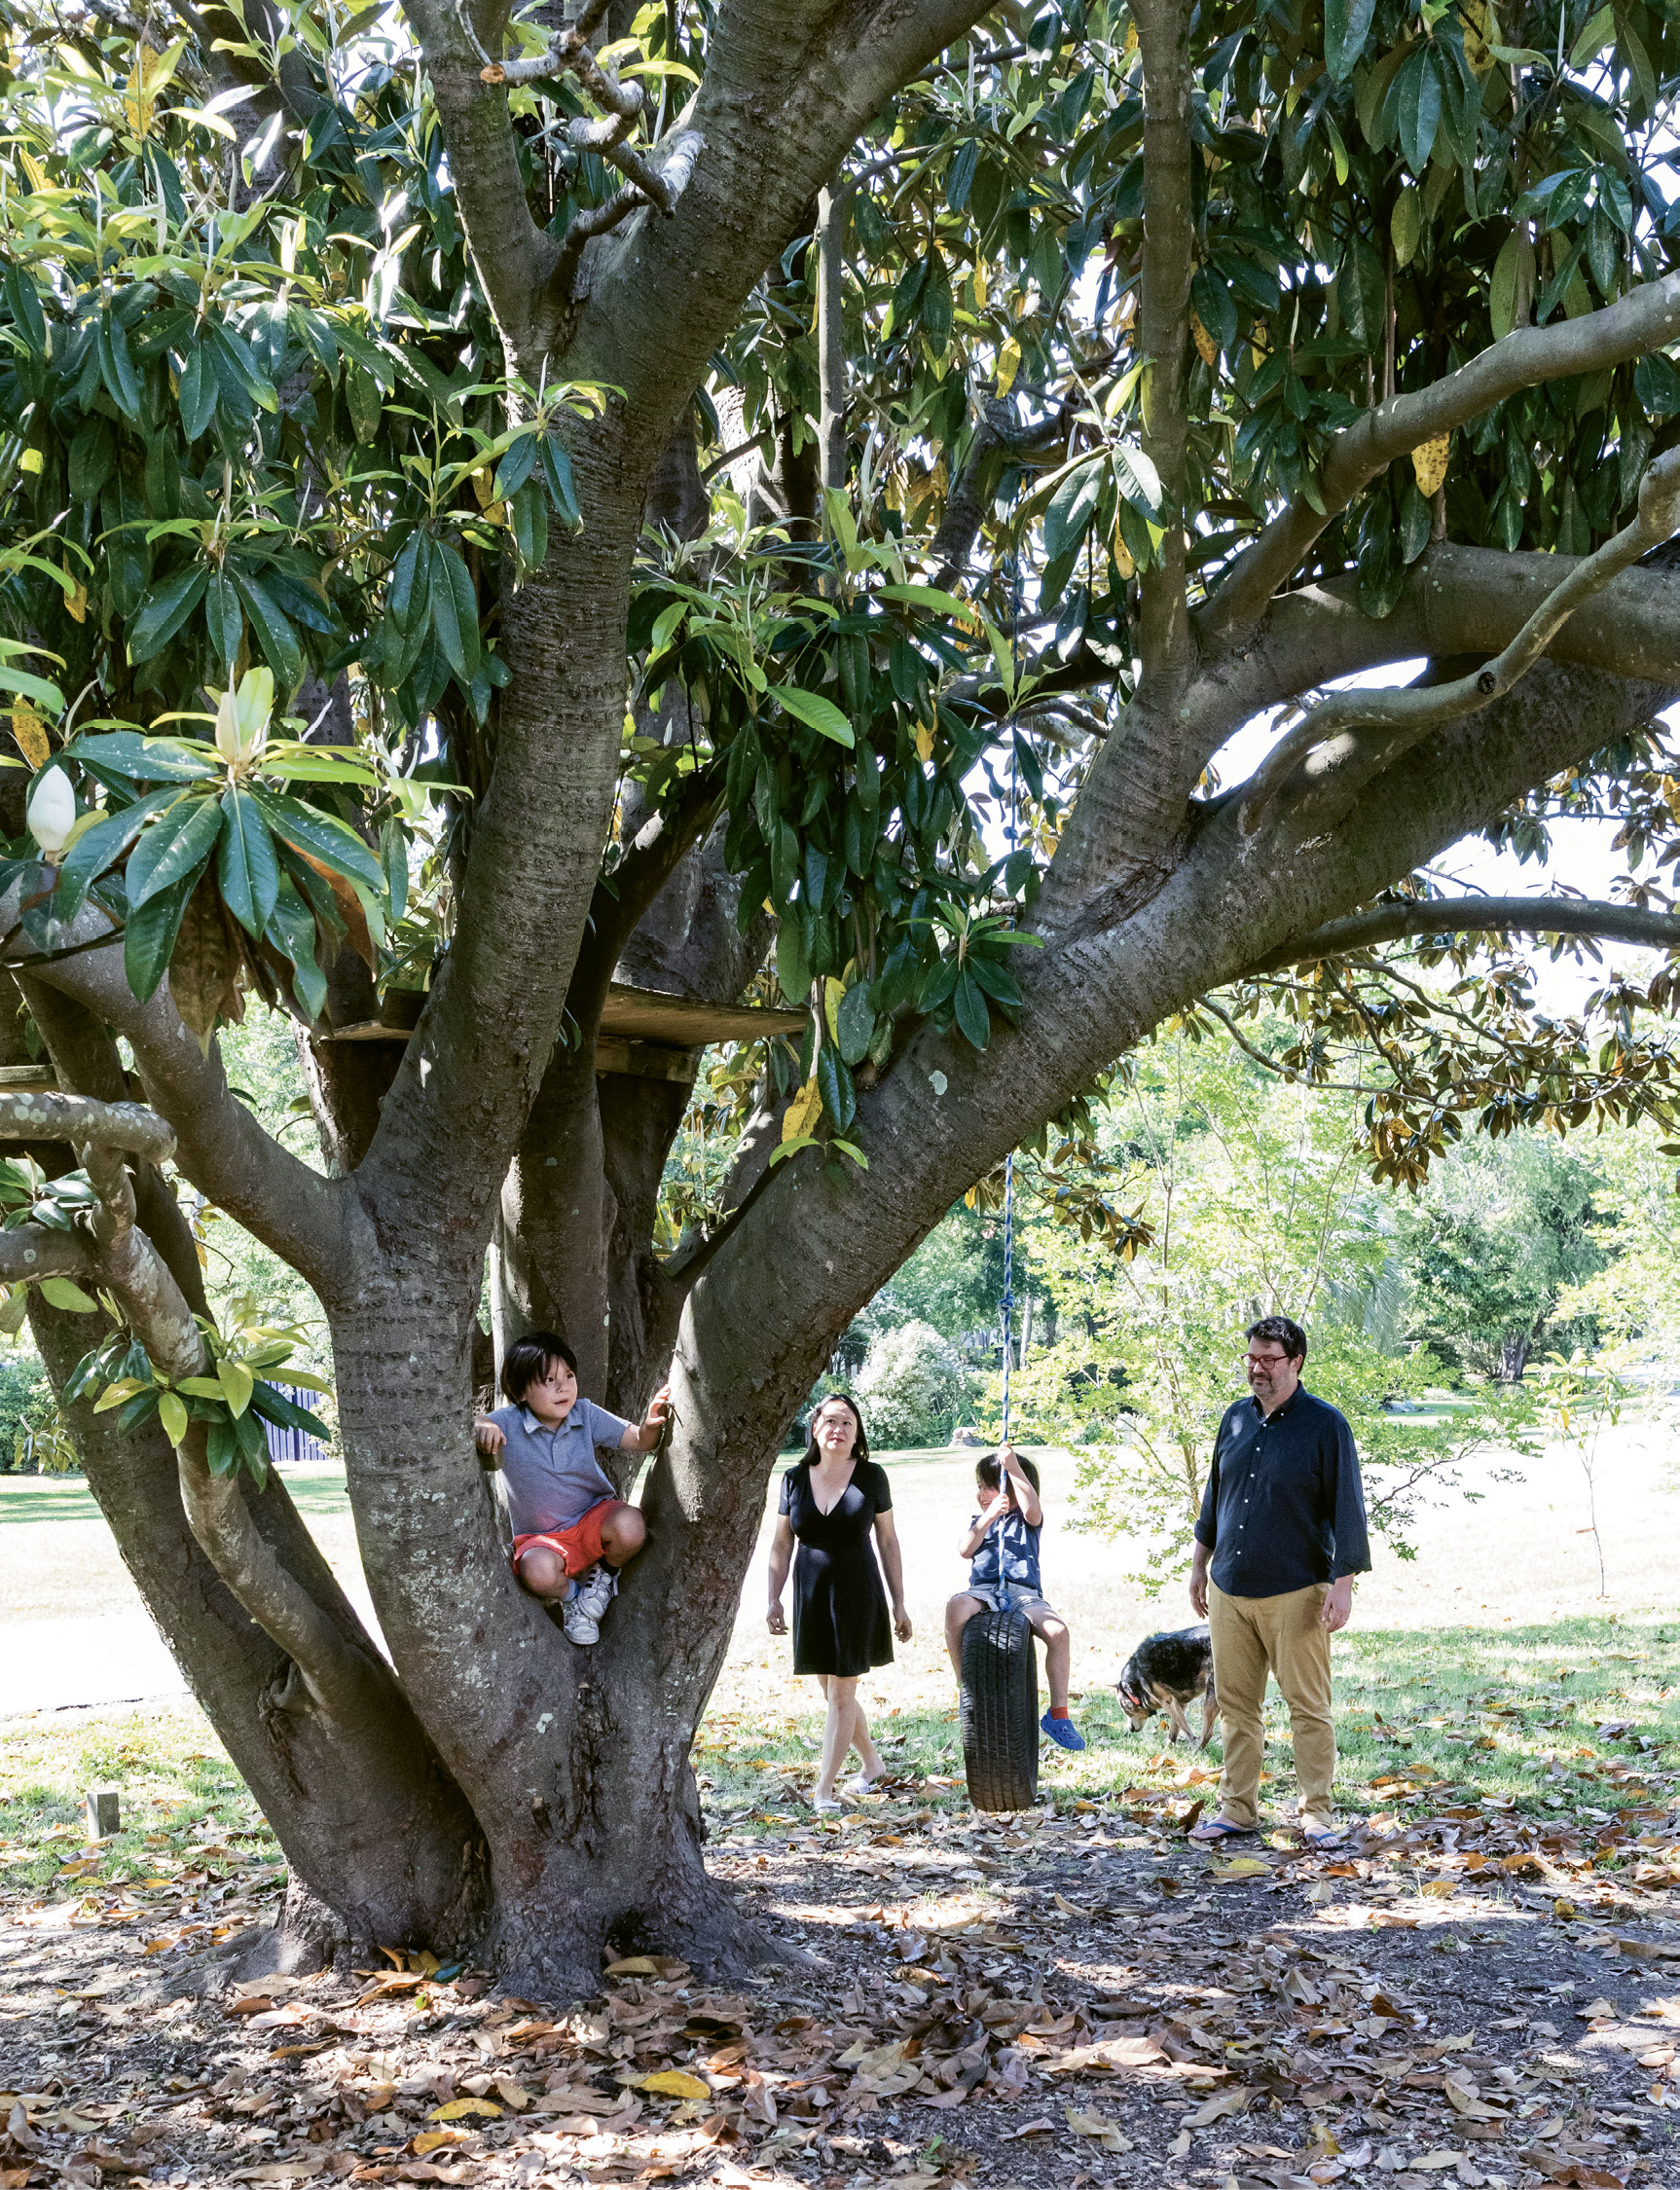 A massive magnolia is one of many established trees that flourish in Wong and husband John David Harmon's yard. The 12 fruit trees provide inspiration for Wong's work and a playground for her boys.